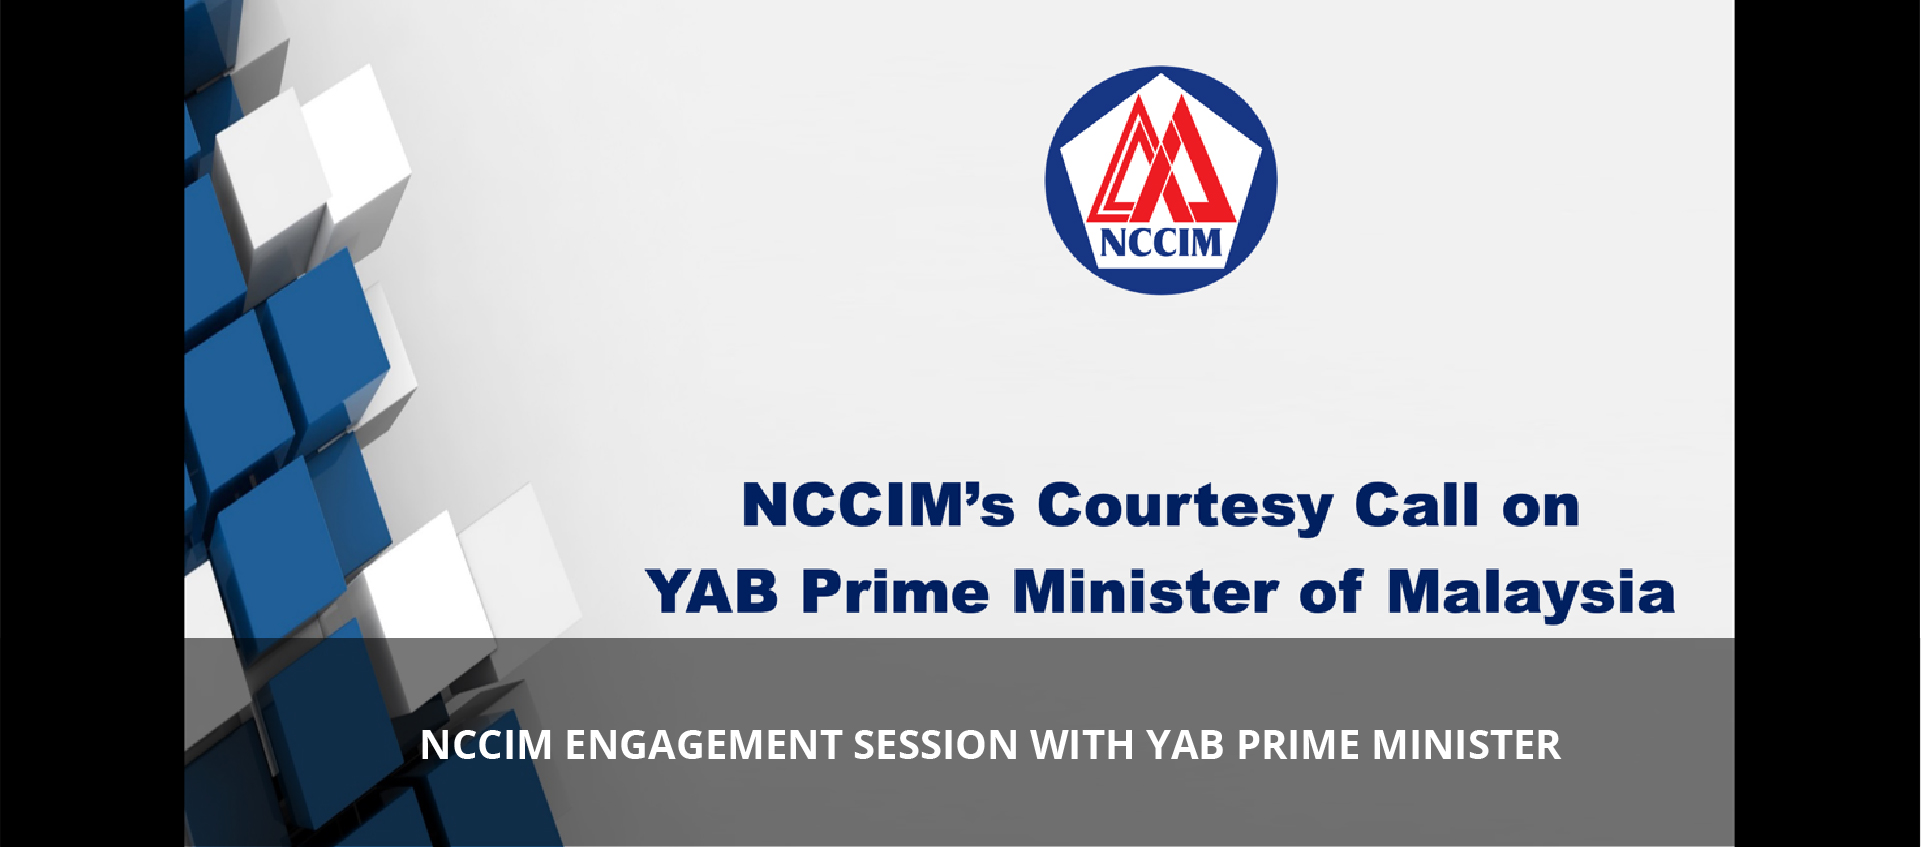 NCCIM ENGAGEMENT SESSION WITH YAB PRIME MINISTER